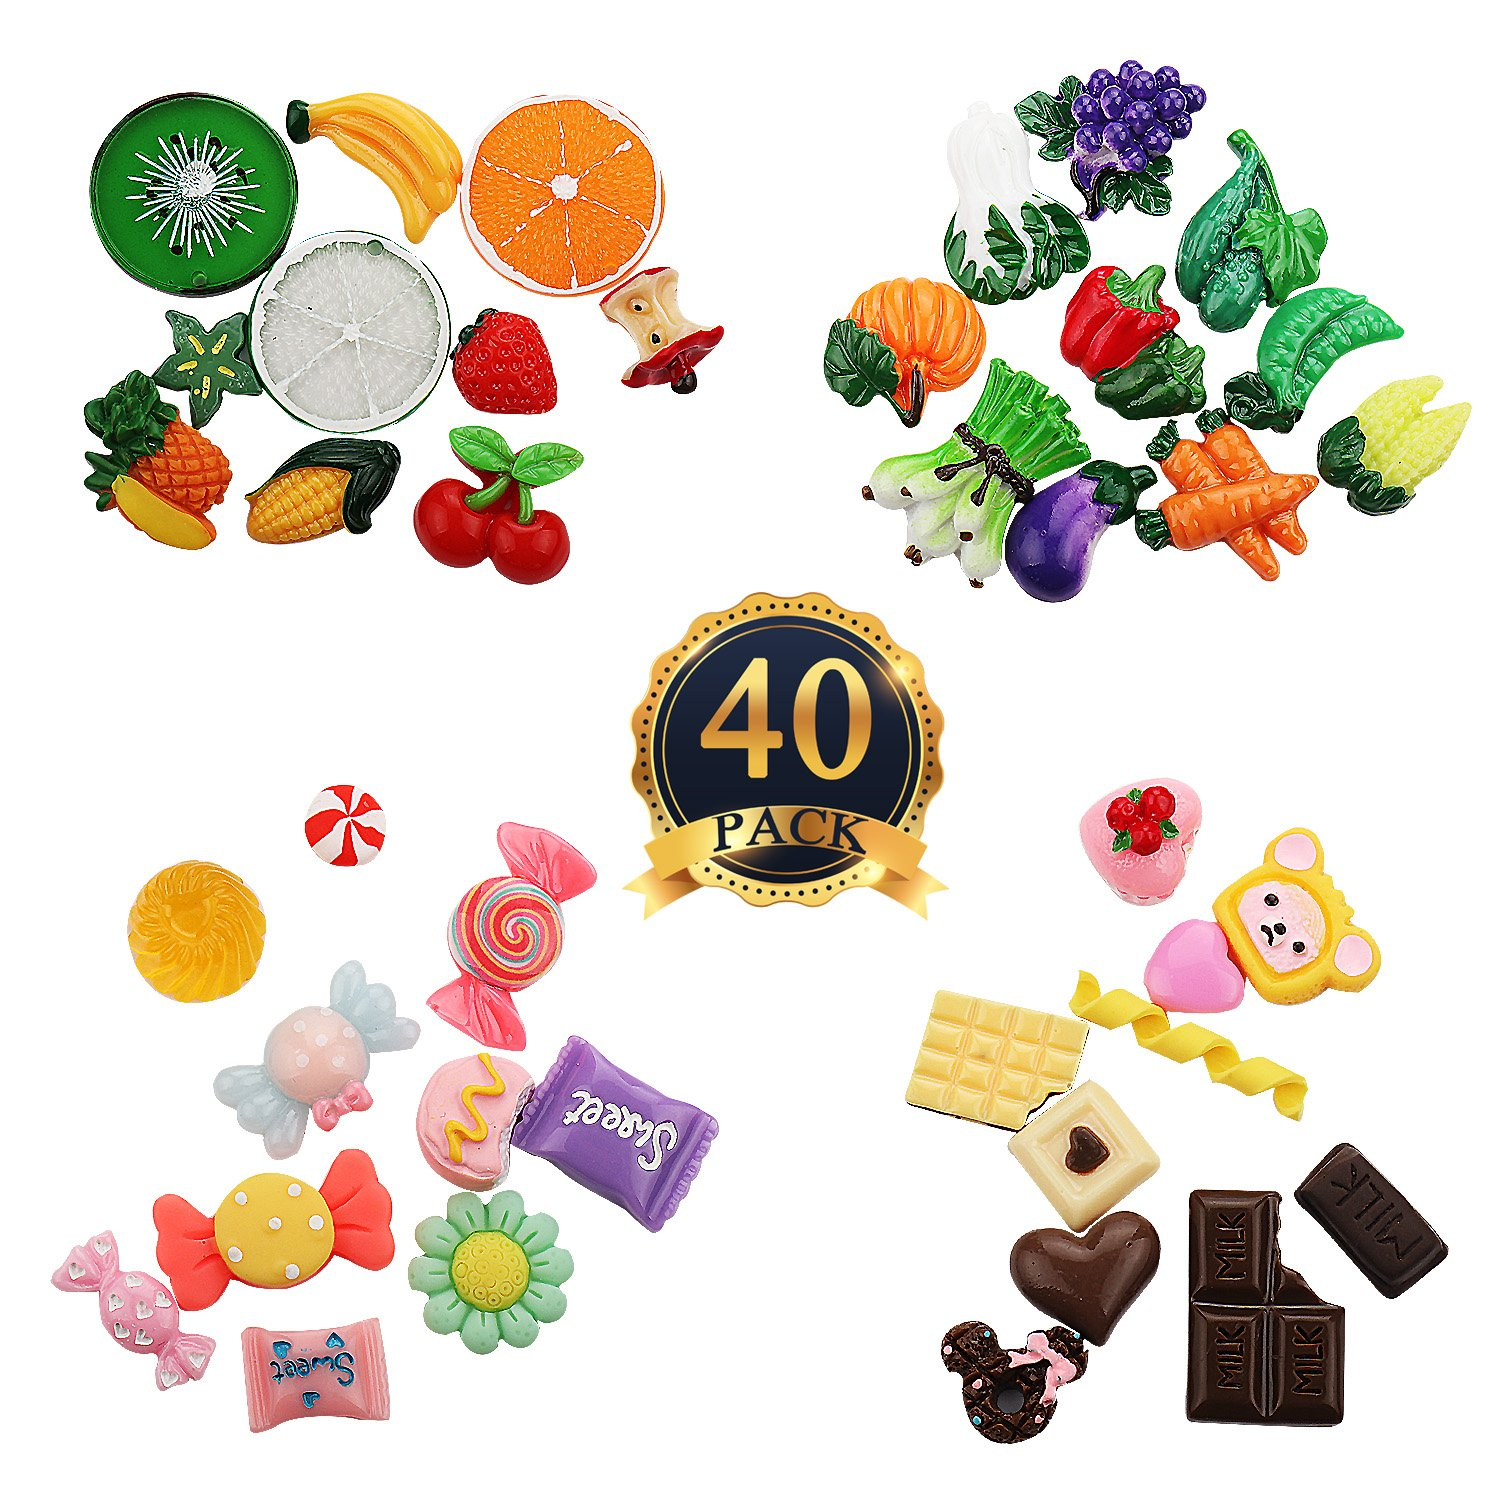 SUBANG 40 Pieces Slime Charms Beads Candy Vegetables Fruit Chocolate Ornaments For Slime Decor Accessories   B079NVKY9M